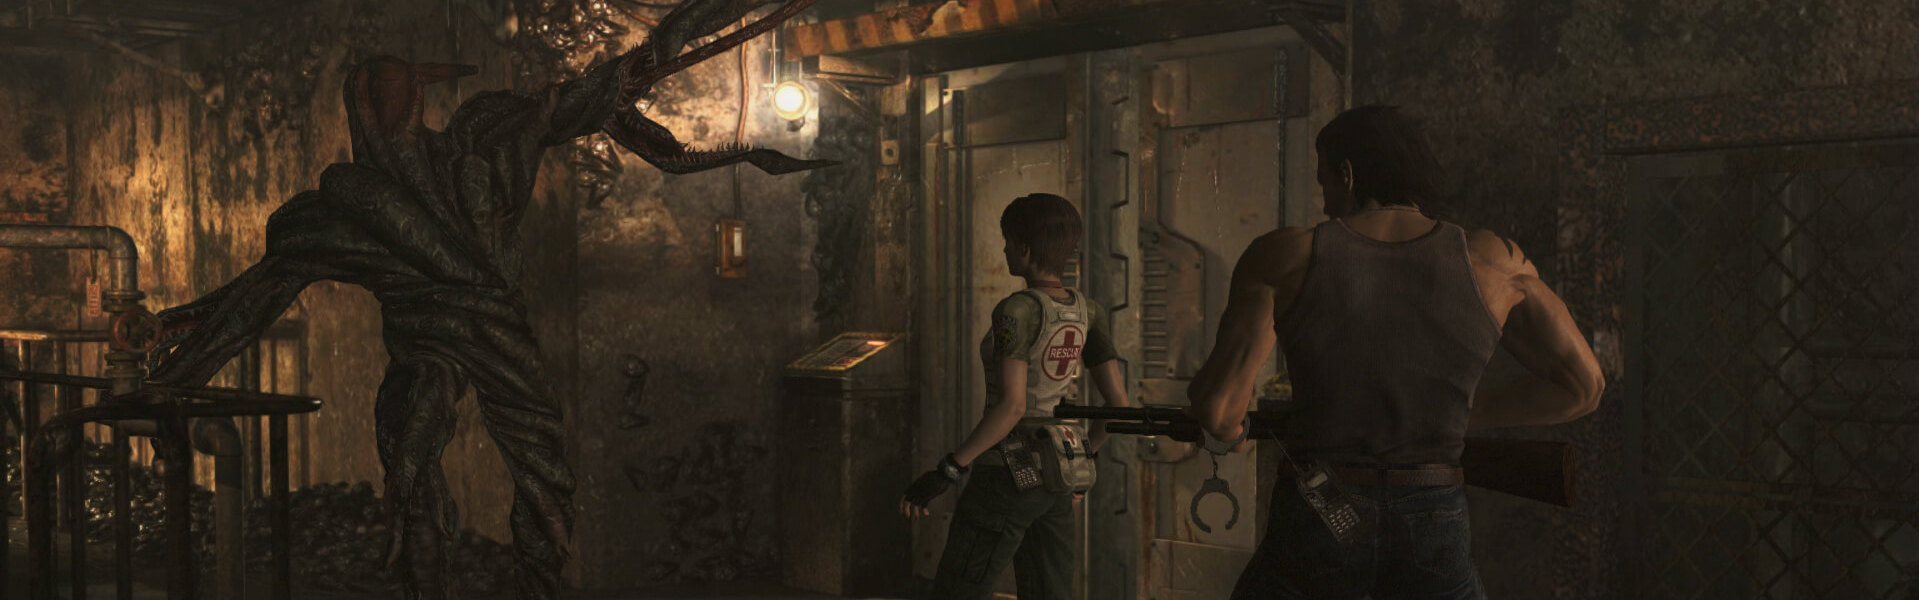 Resident Evil 0 / Biohazard 0 HD Remaster Steam Key GLOBAL